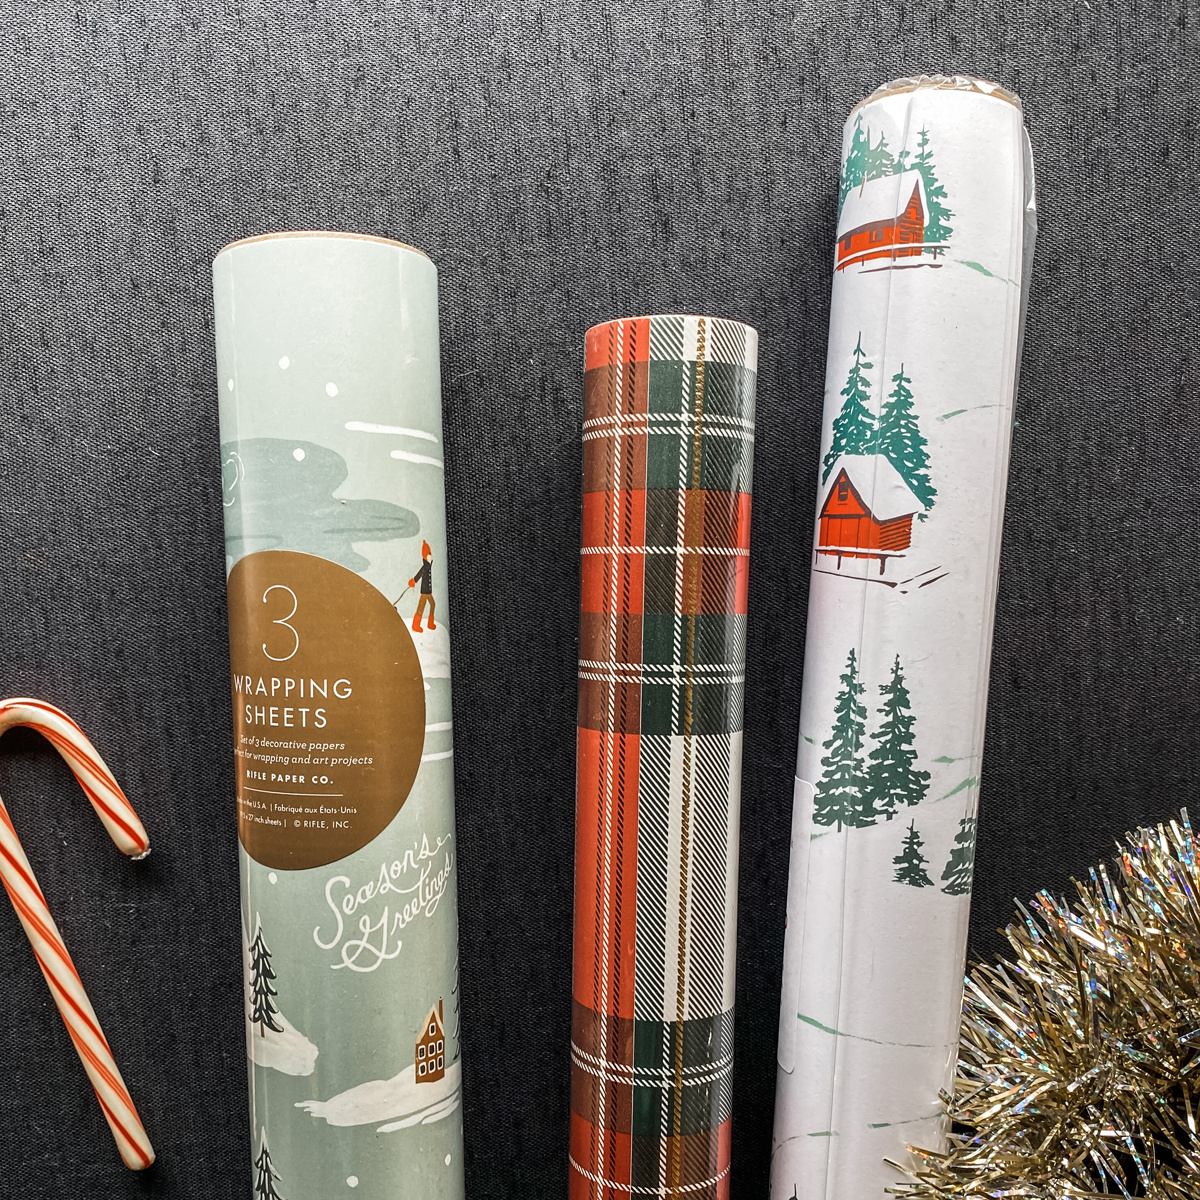 Gus and Ruby Letterpress - GR Cozy Cabin Set of 3 Wrapping Paper Rolls